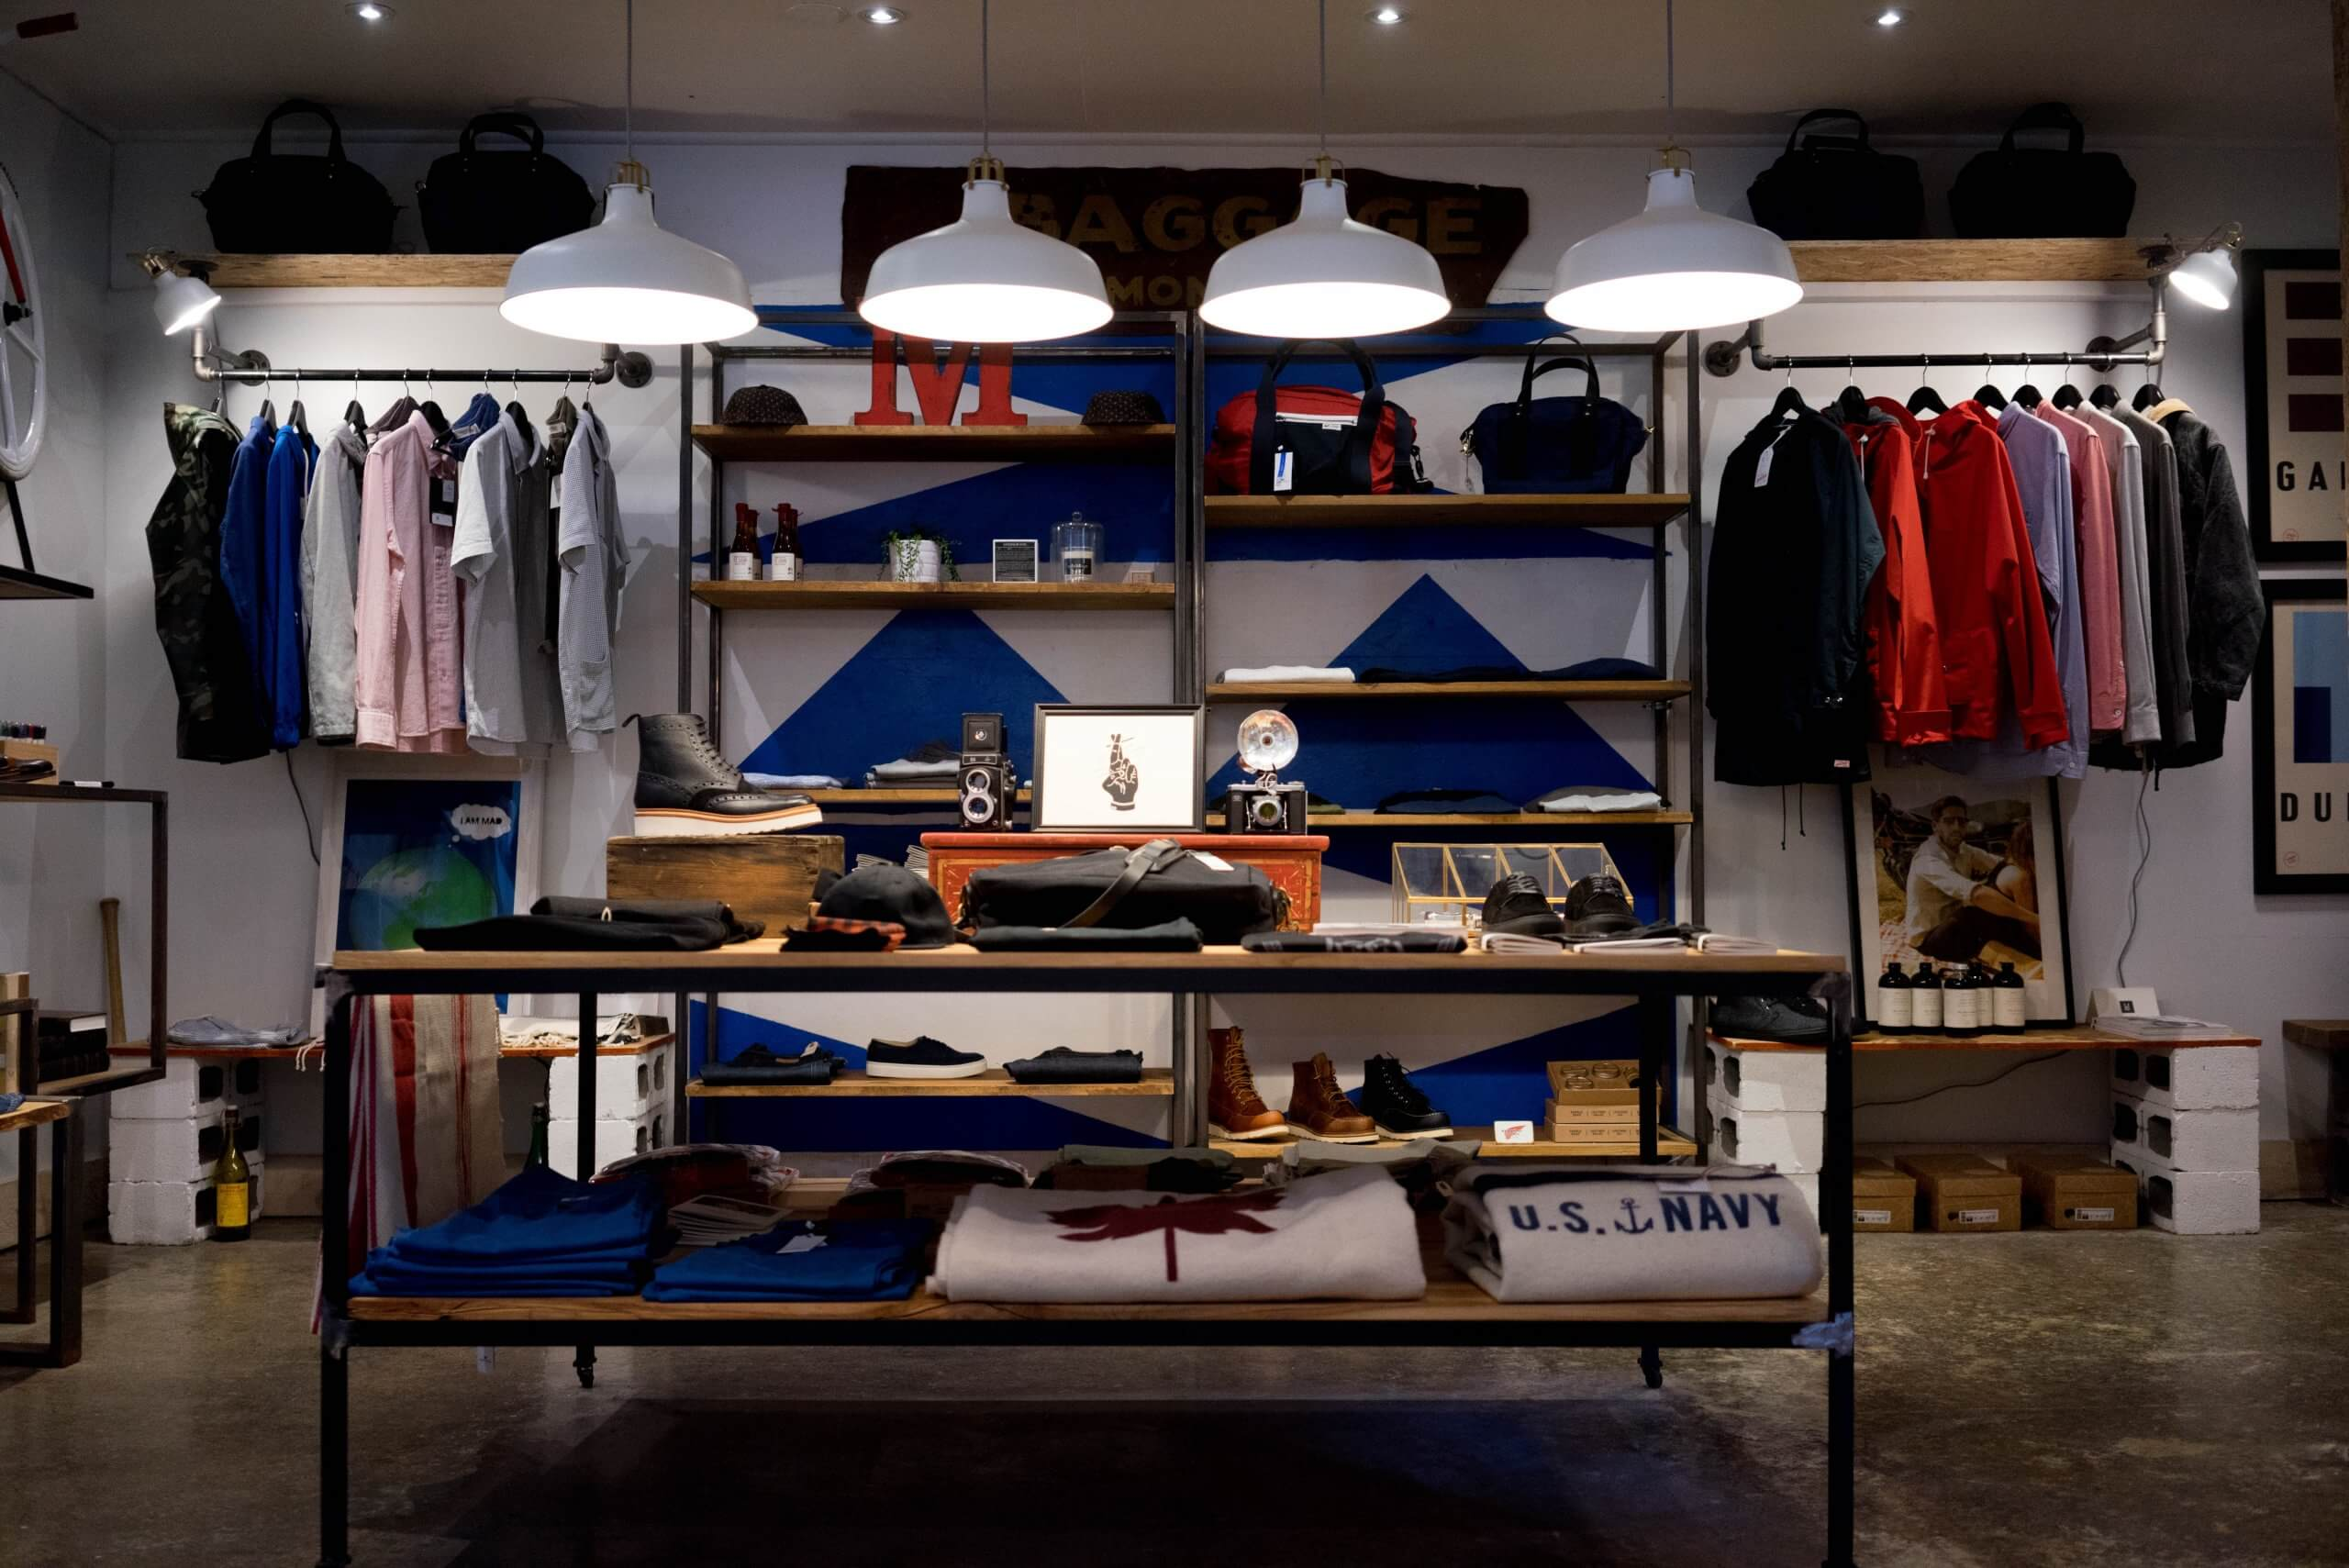 Tidy Clothing Store